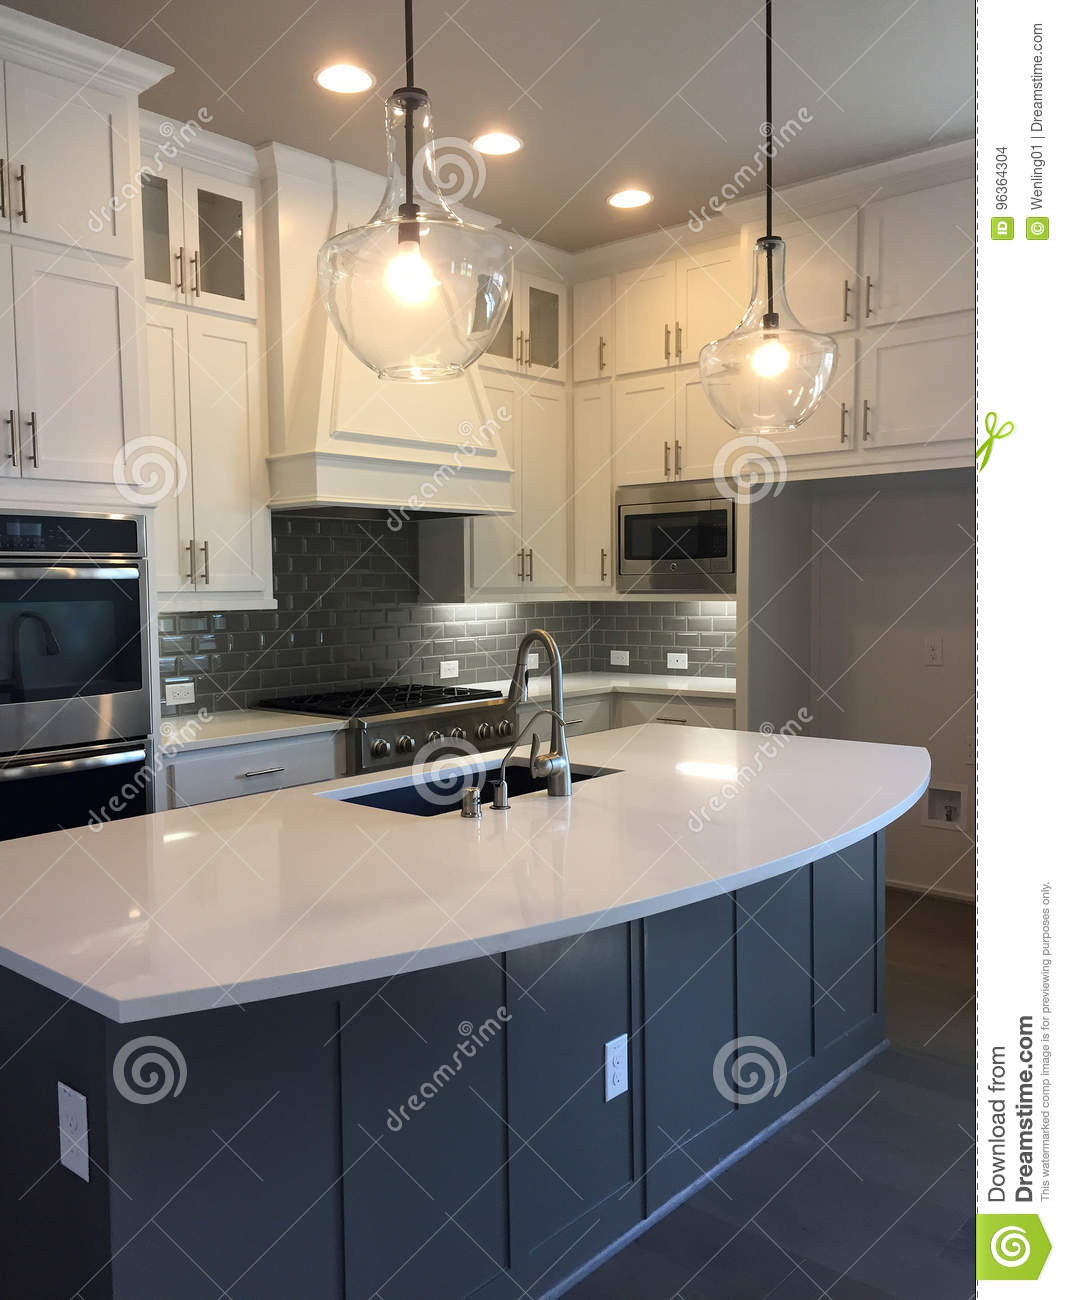 Nice Modern Kitchen Design In A New House Stock Photo Image Of